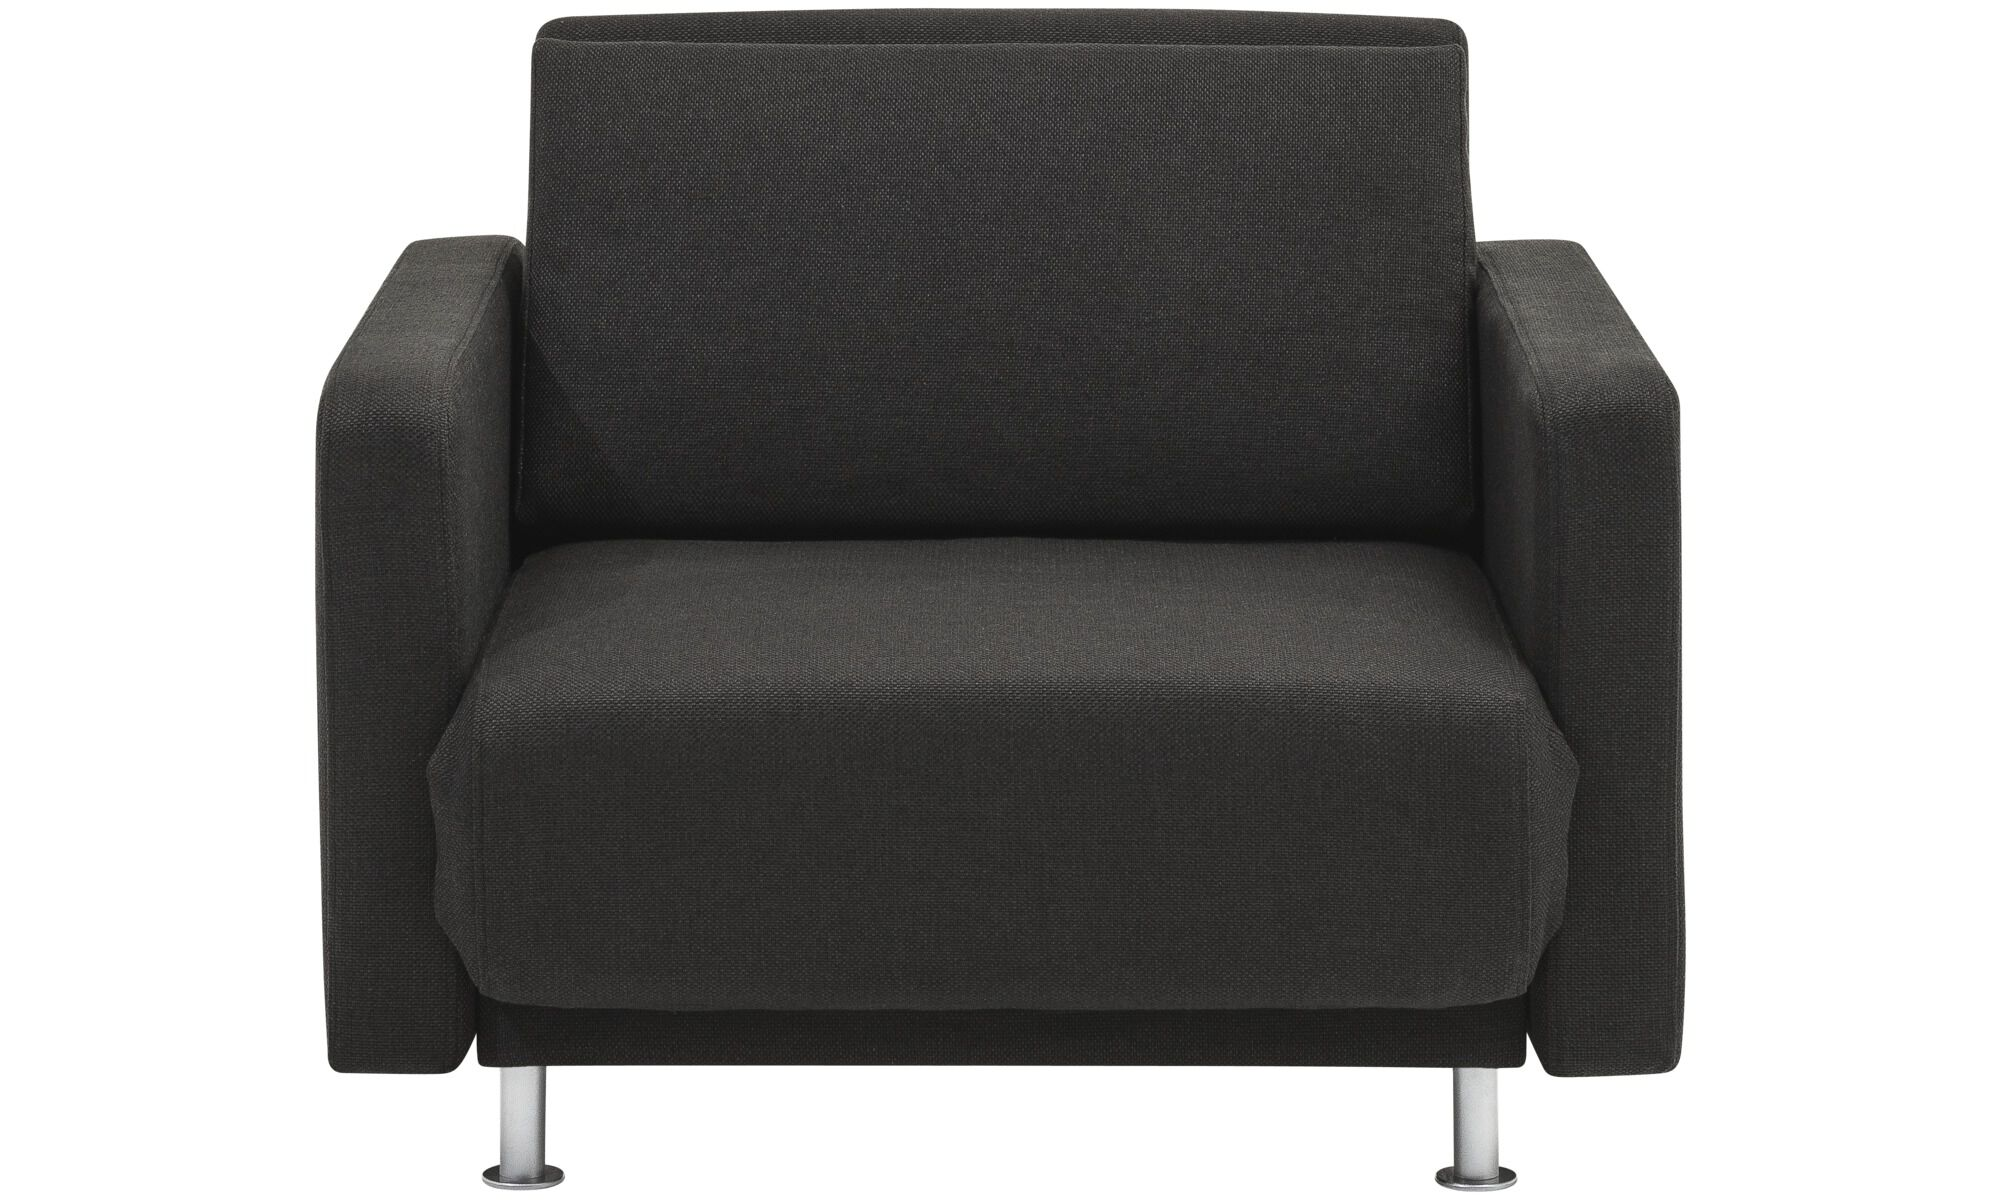 Sofa beds Melo 2 sofa with reclining and sleeping function